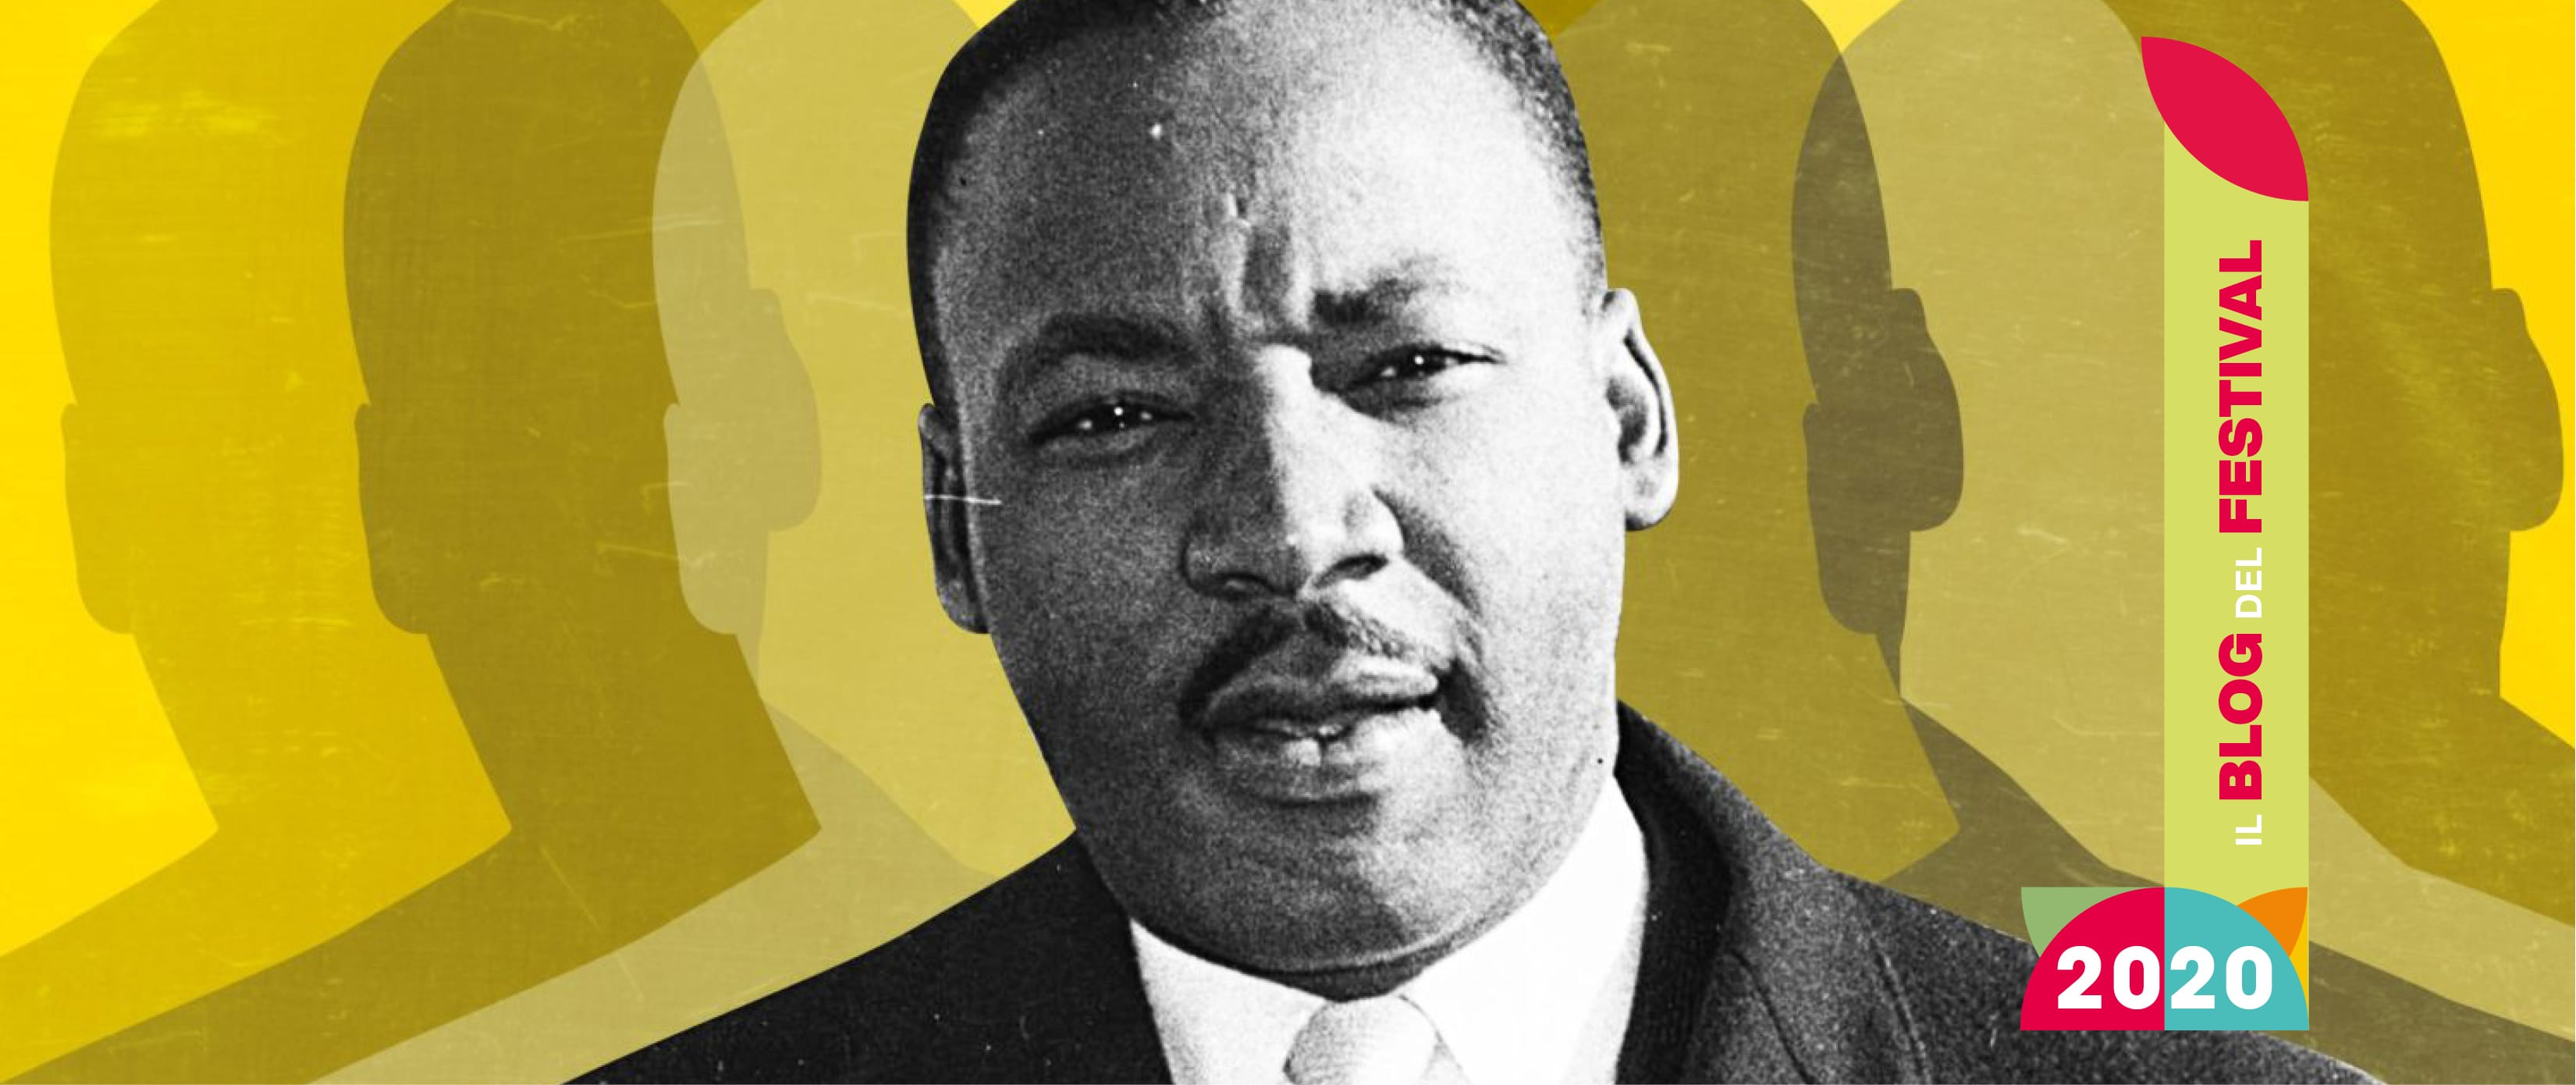 """I have a dream"", l'eredità di Martin Luther King ai tempi del Black Live Matter"